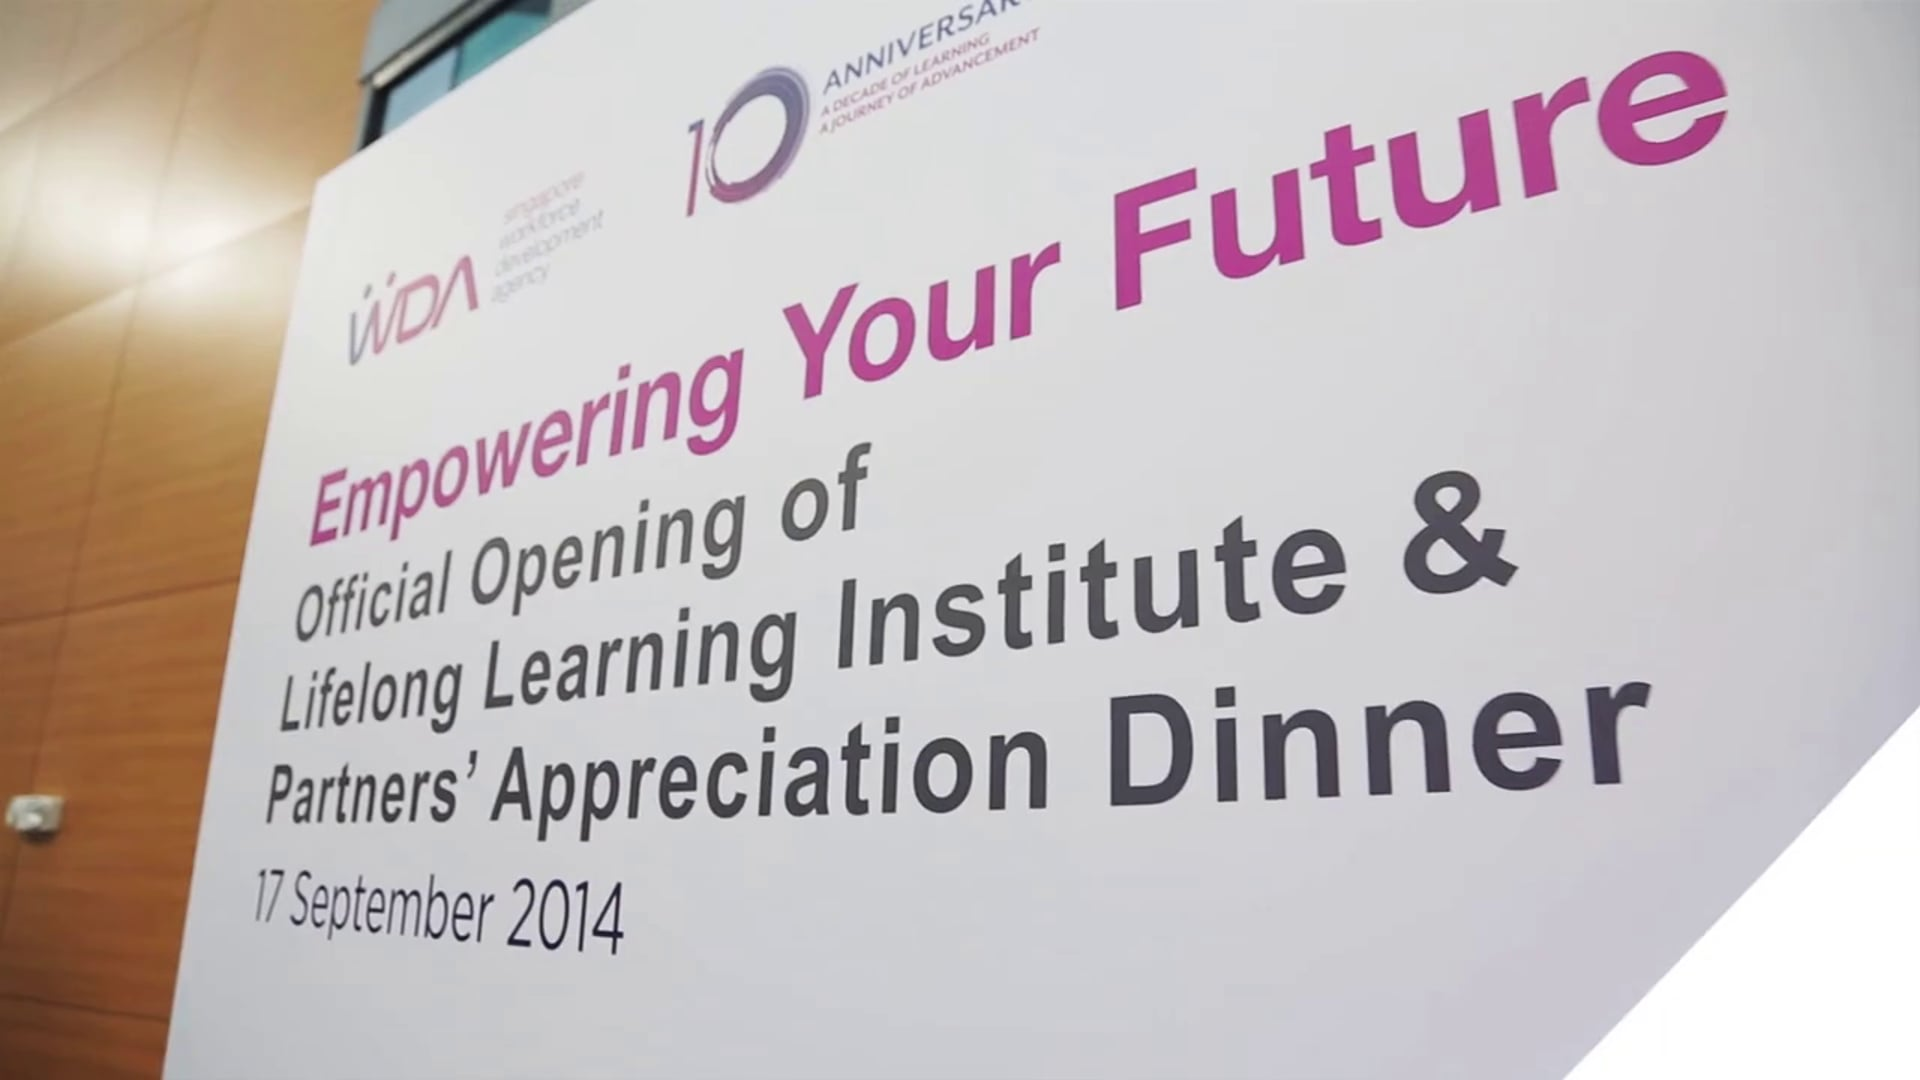 Launch of Lifelong Learning Institute